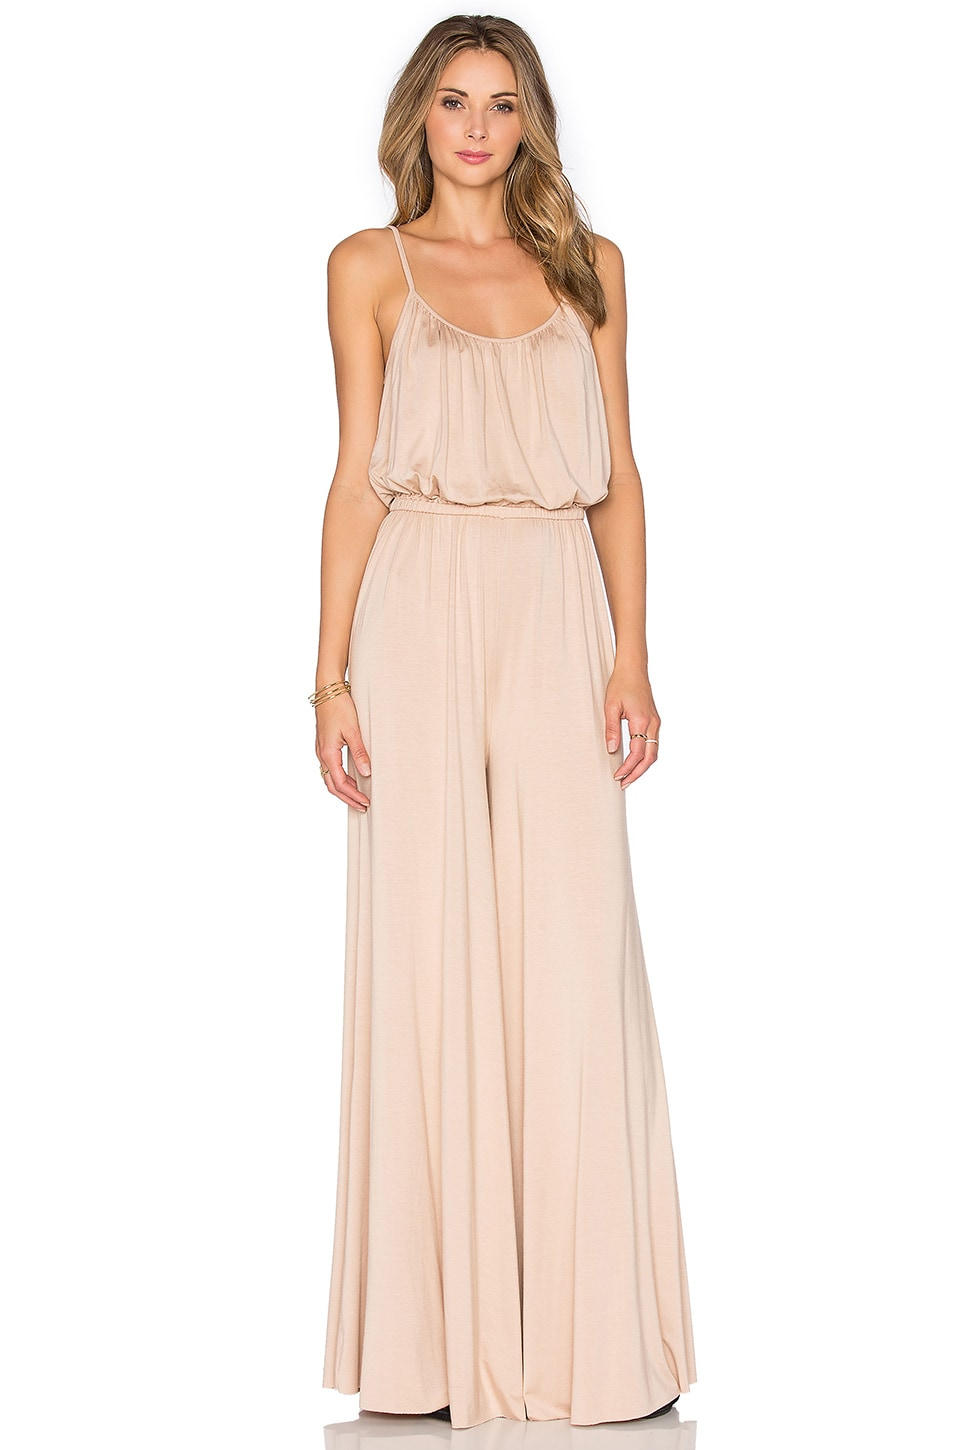 Rachel Pally Harlan Jumpsuit in Bamboo